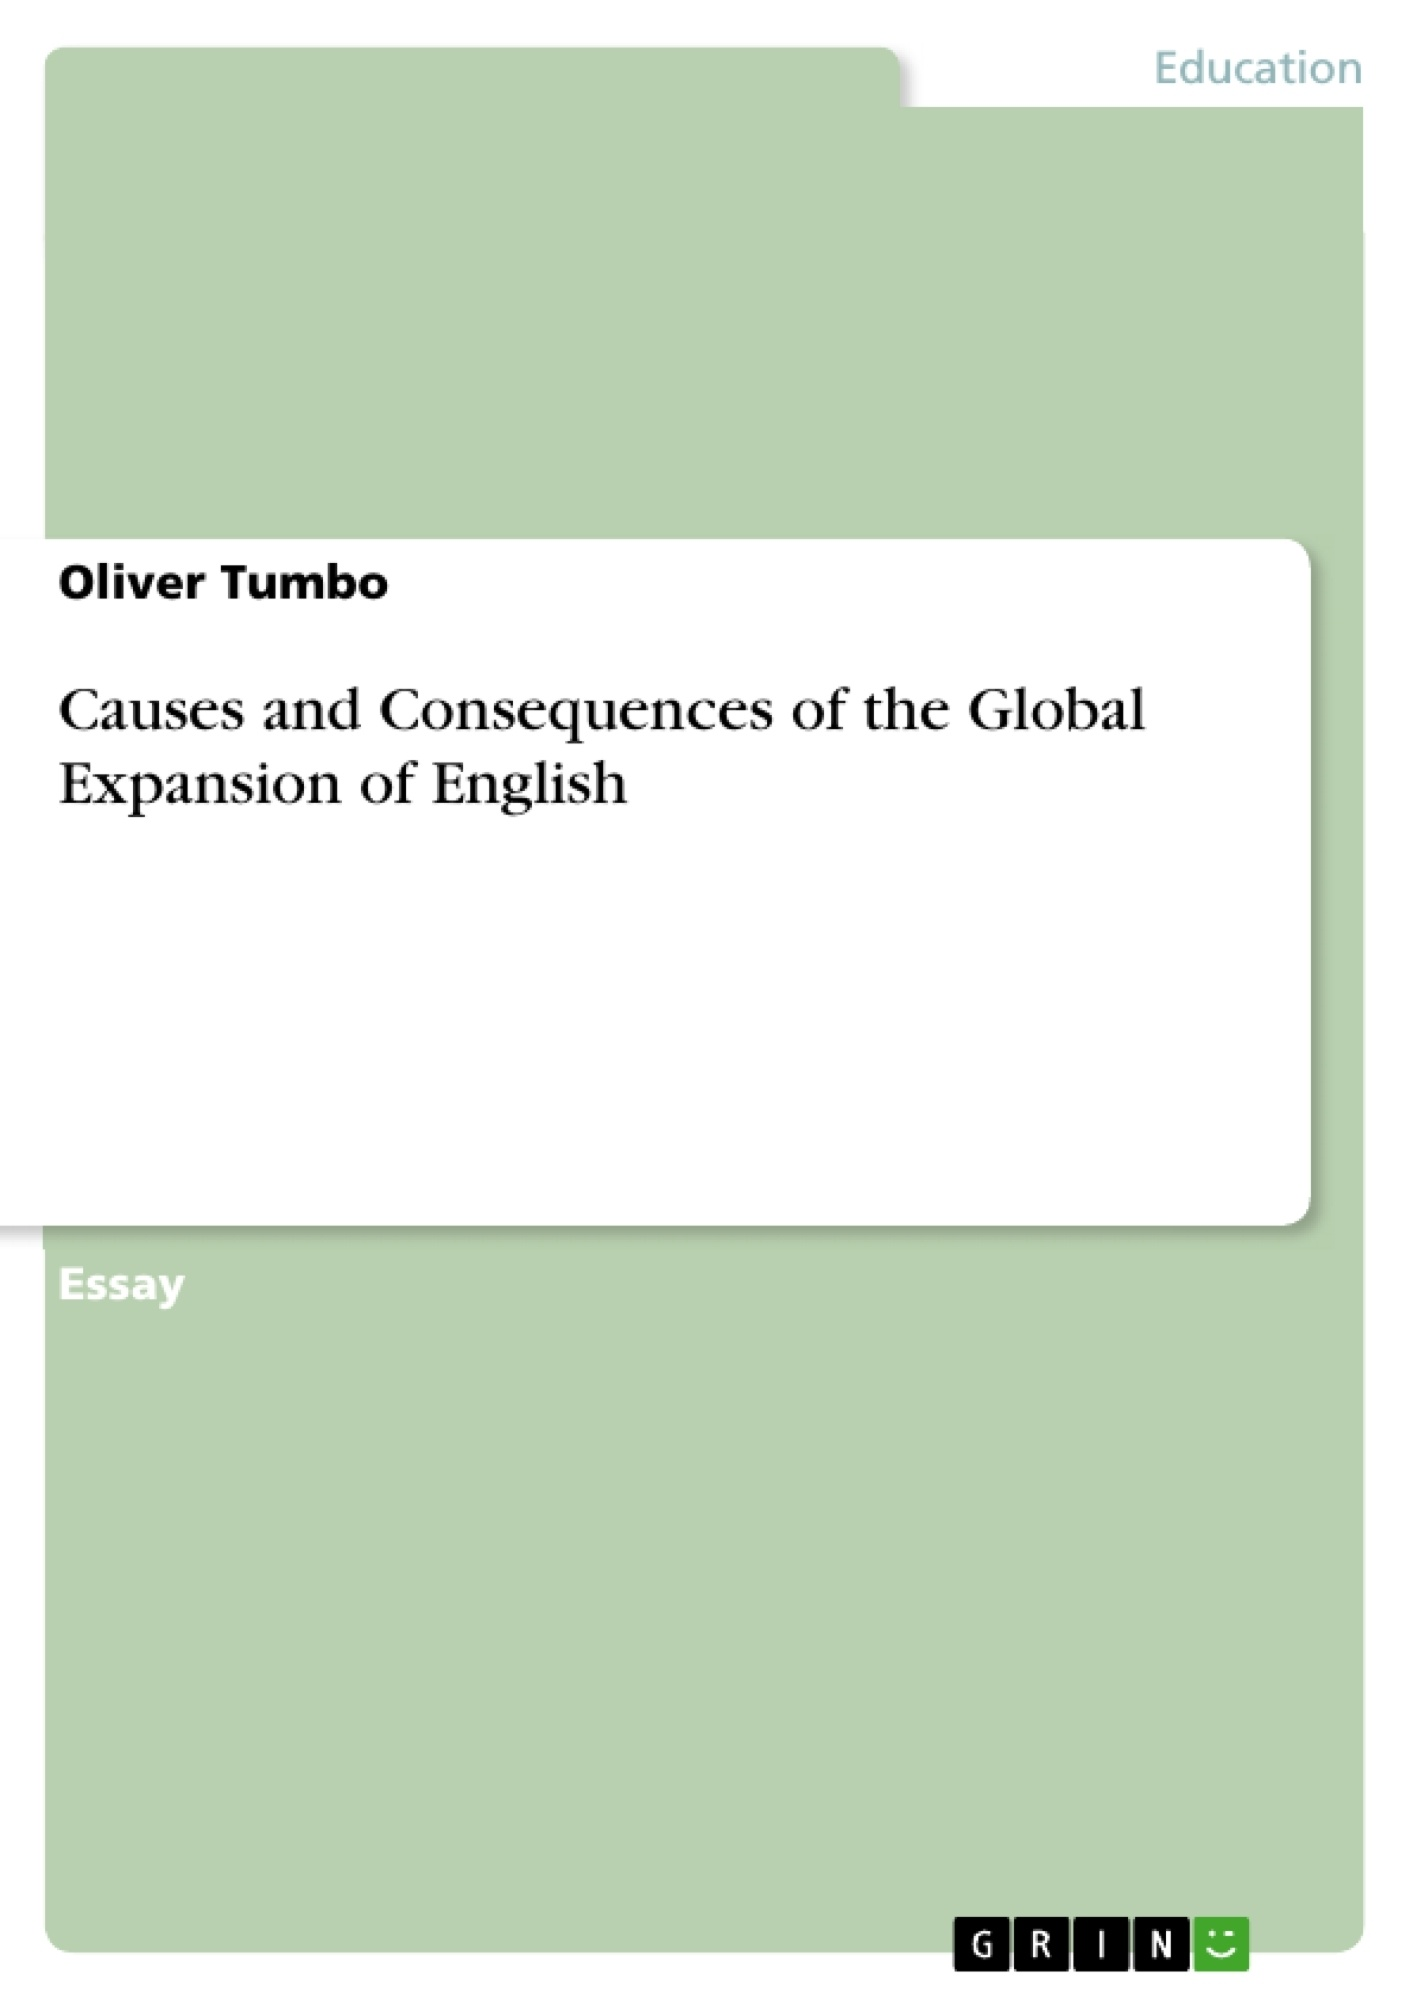 Title: Causes and Consequences of the Global Expansion of English